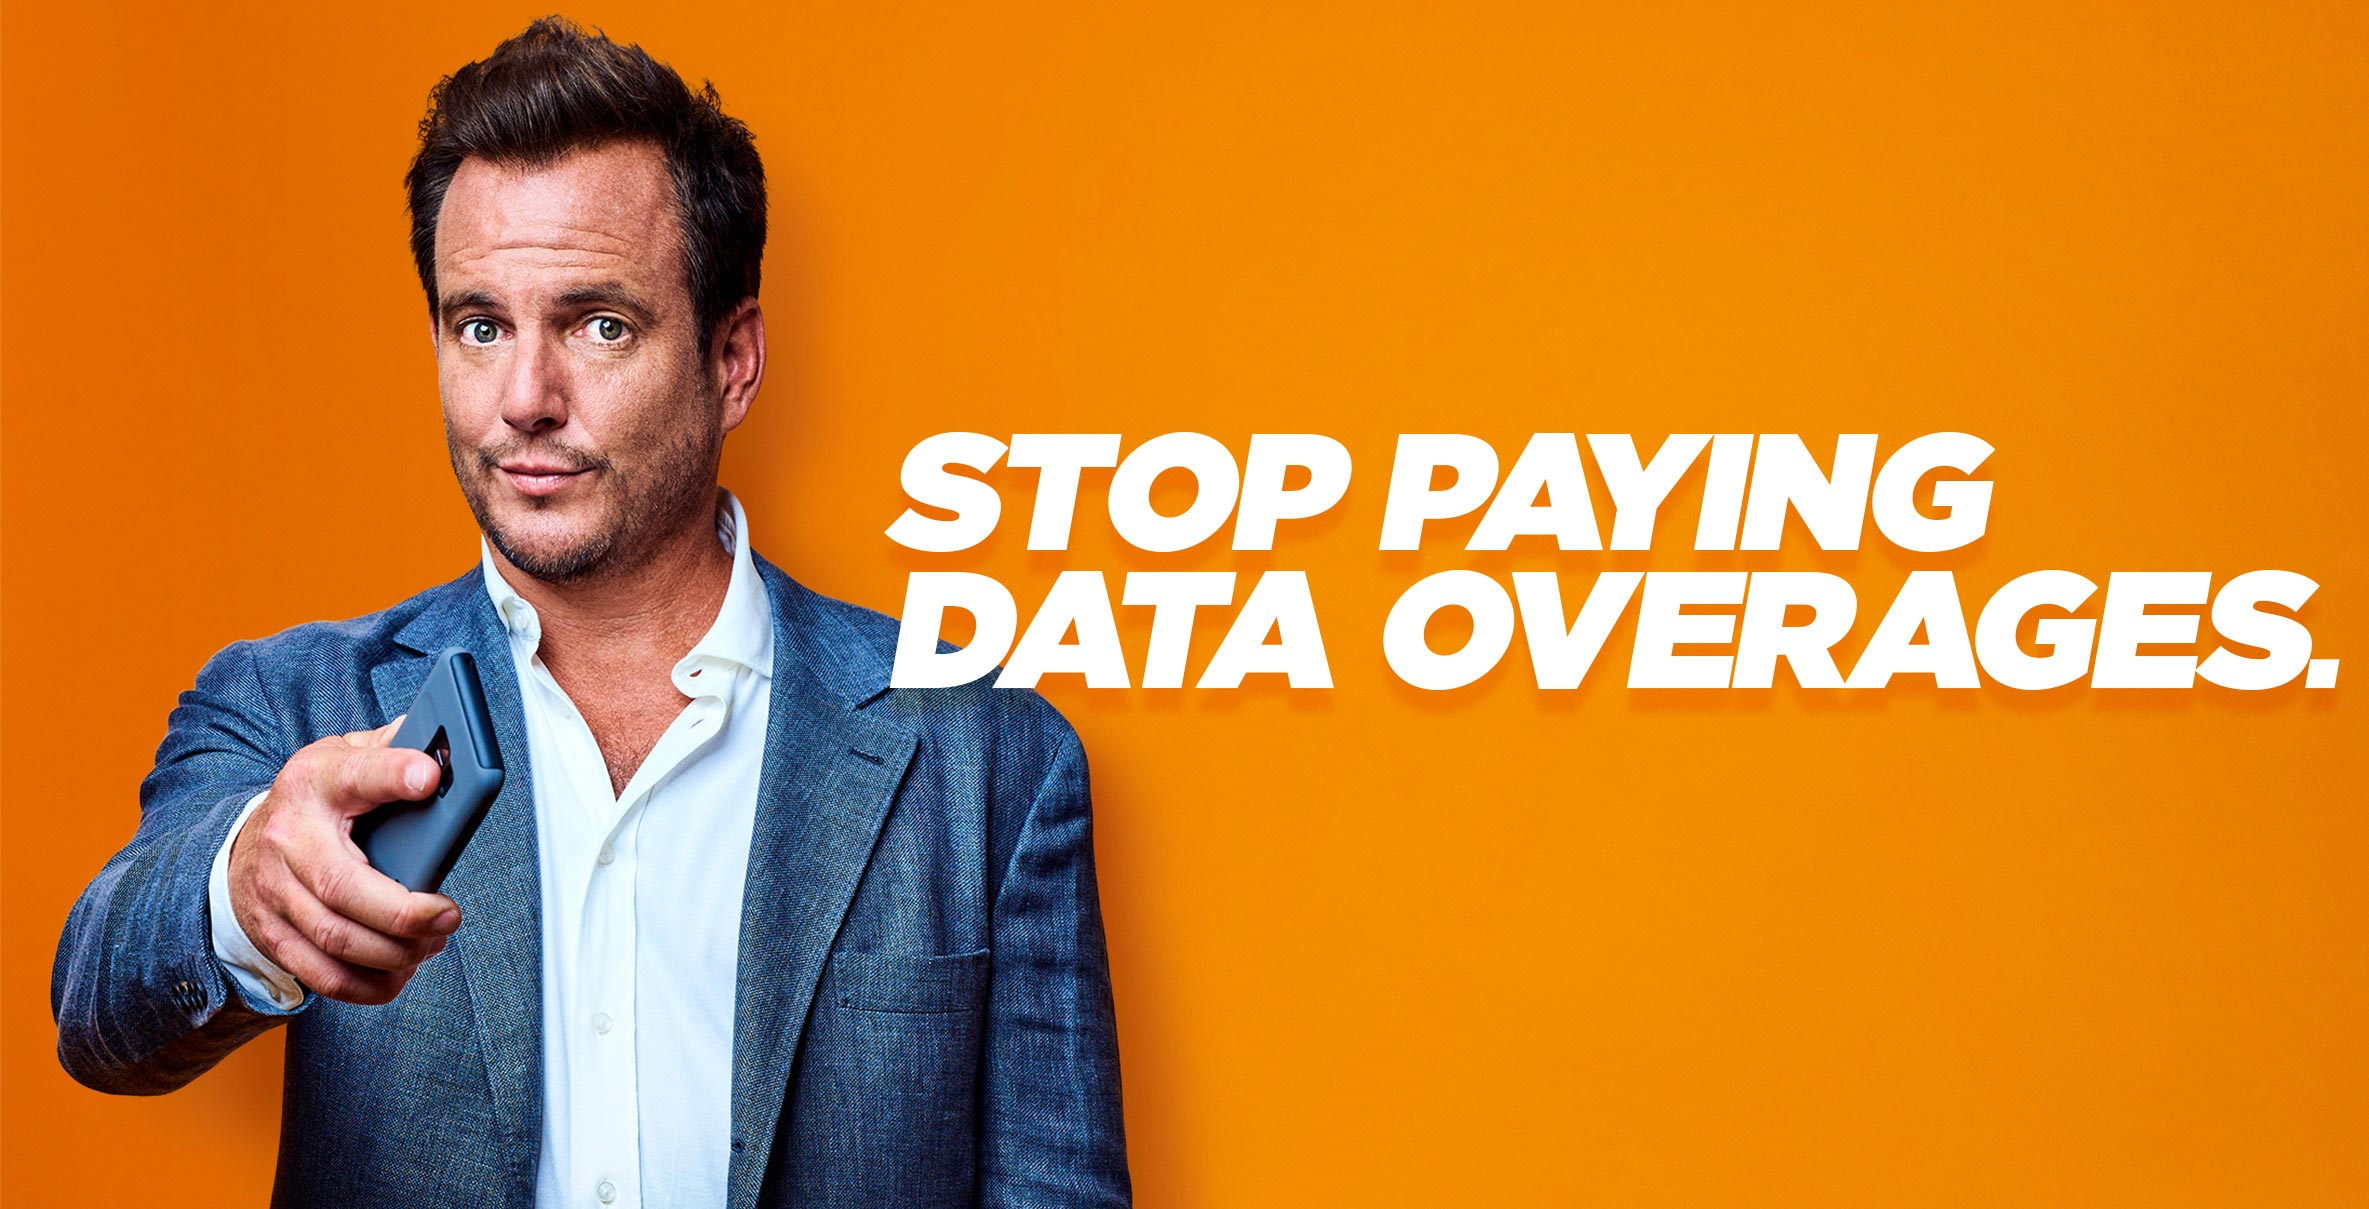 Freedom Mobile brings on Canadian-born actor Will Arnett as official spokesperson